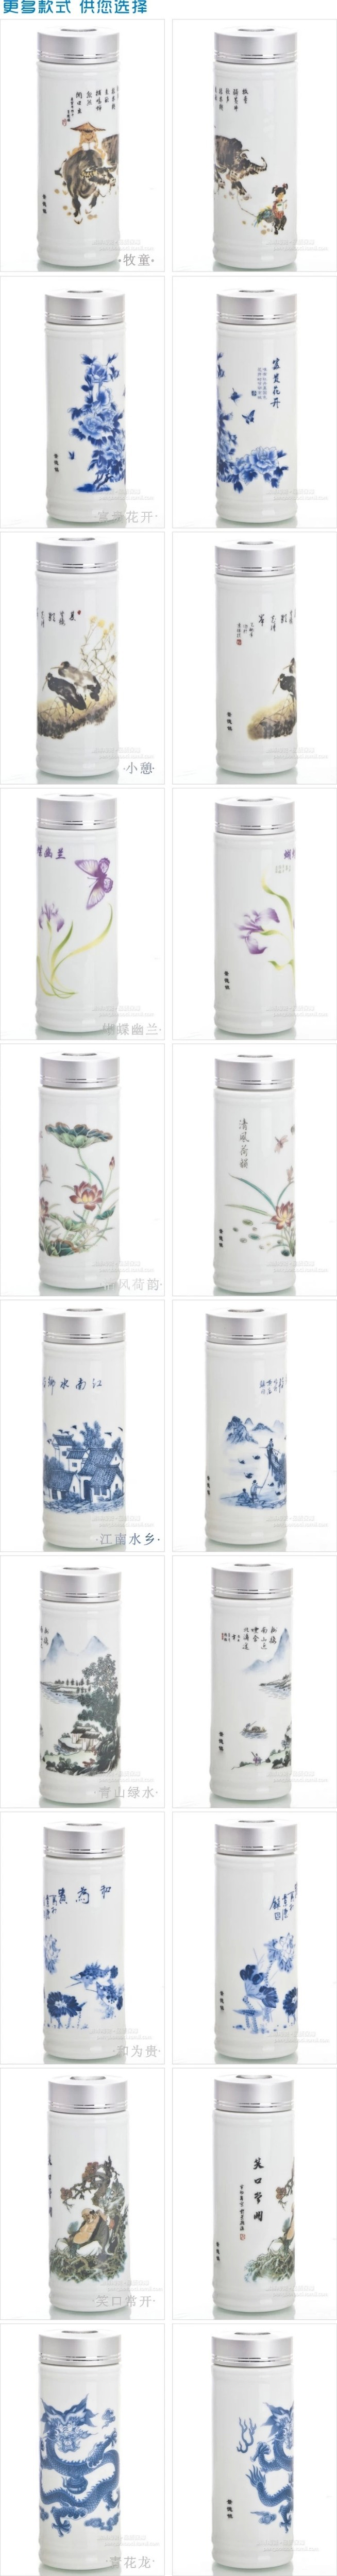 935ee16272 Bone china stainless steel porcelain thermos mug / ceramic. water cup / travel  bottle / thermal sports vacuum flask free shipping. You only need $2, ...